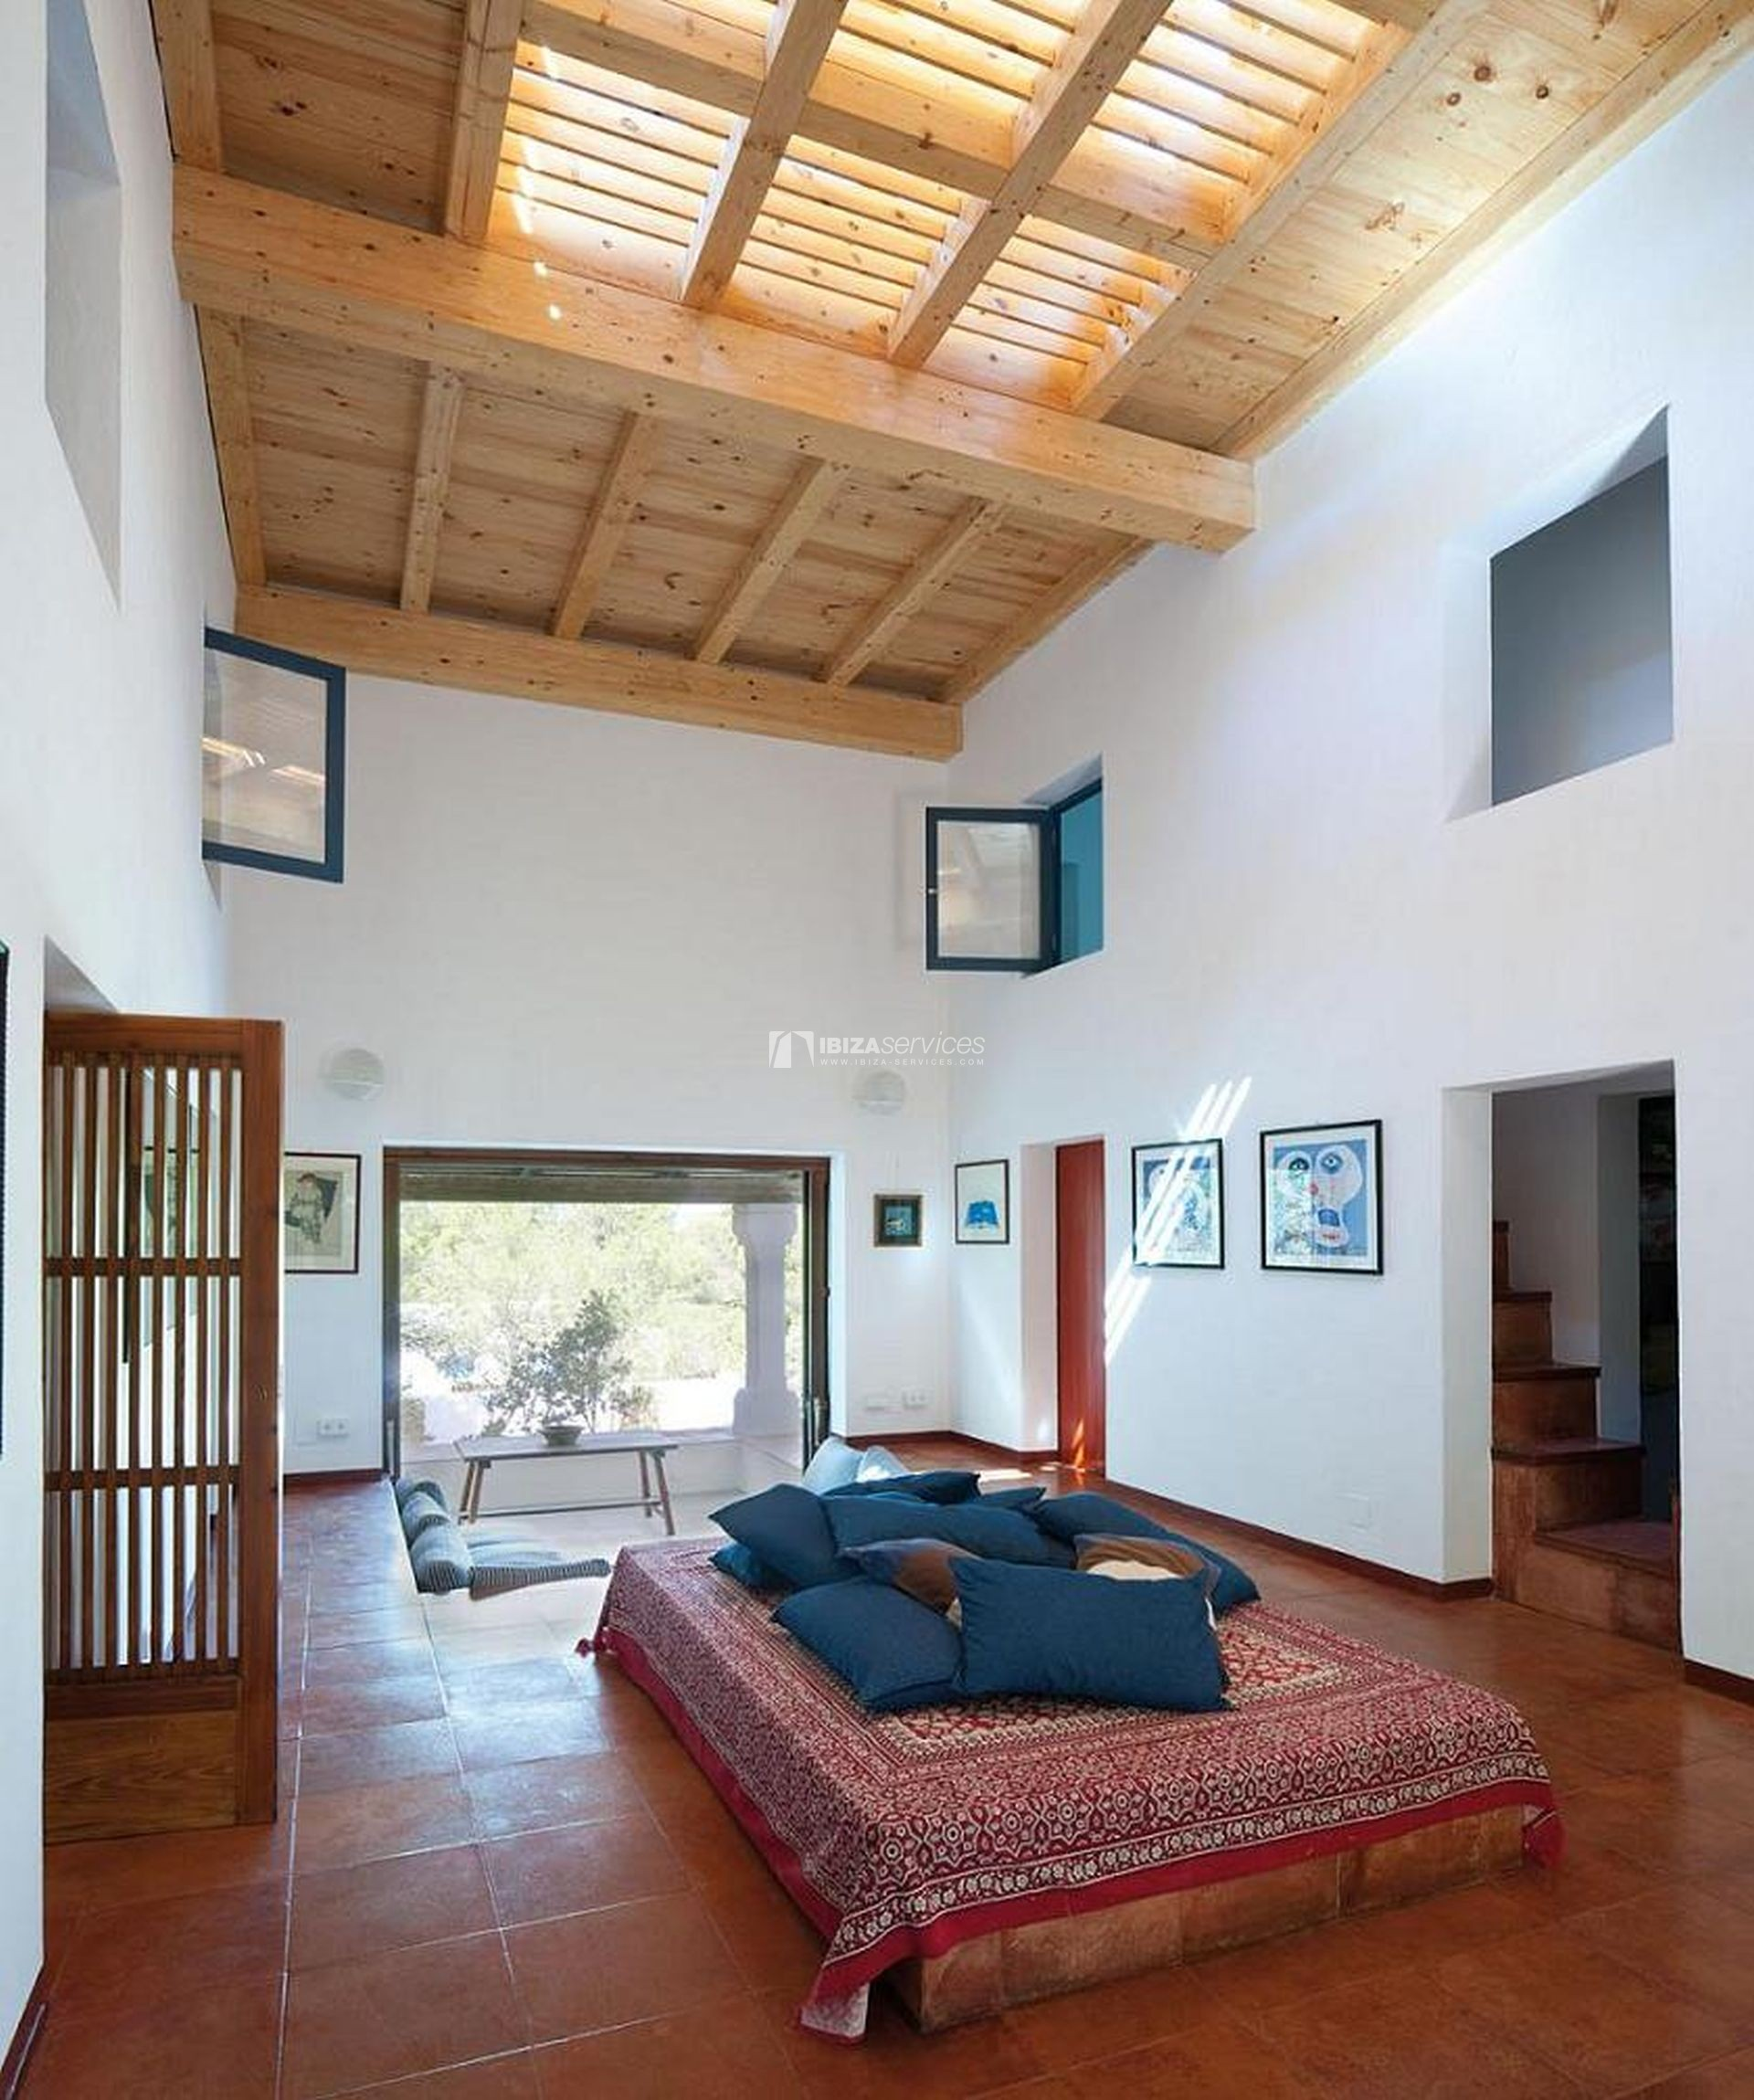 Rustic villa for sale in Formentera perspectiva 15